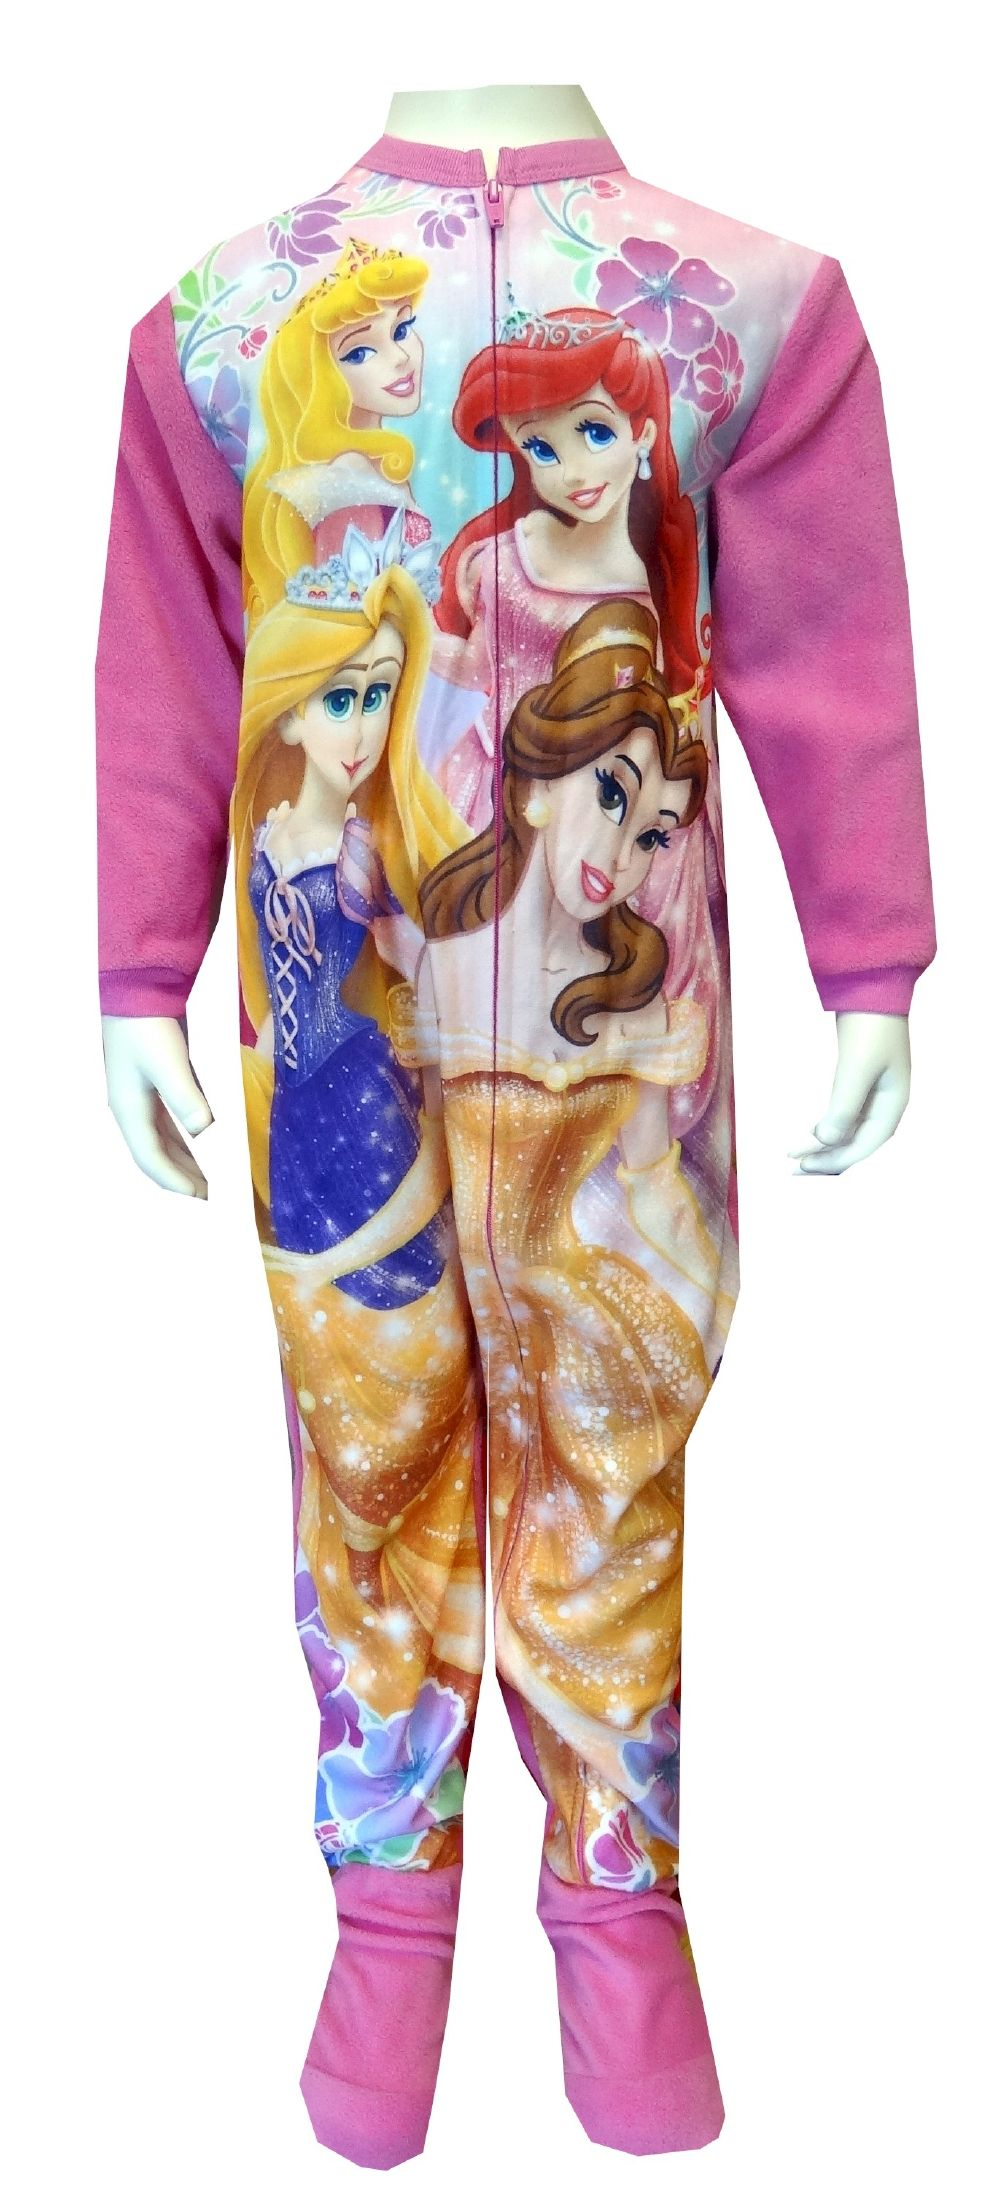 Disney Princess Toddler Onesie Footie Pajama Sleeper Perfect for your  little princess as she heads off a4a33fbad